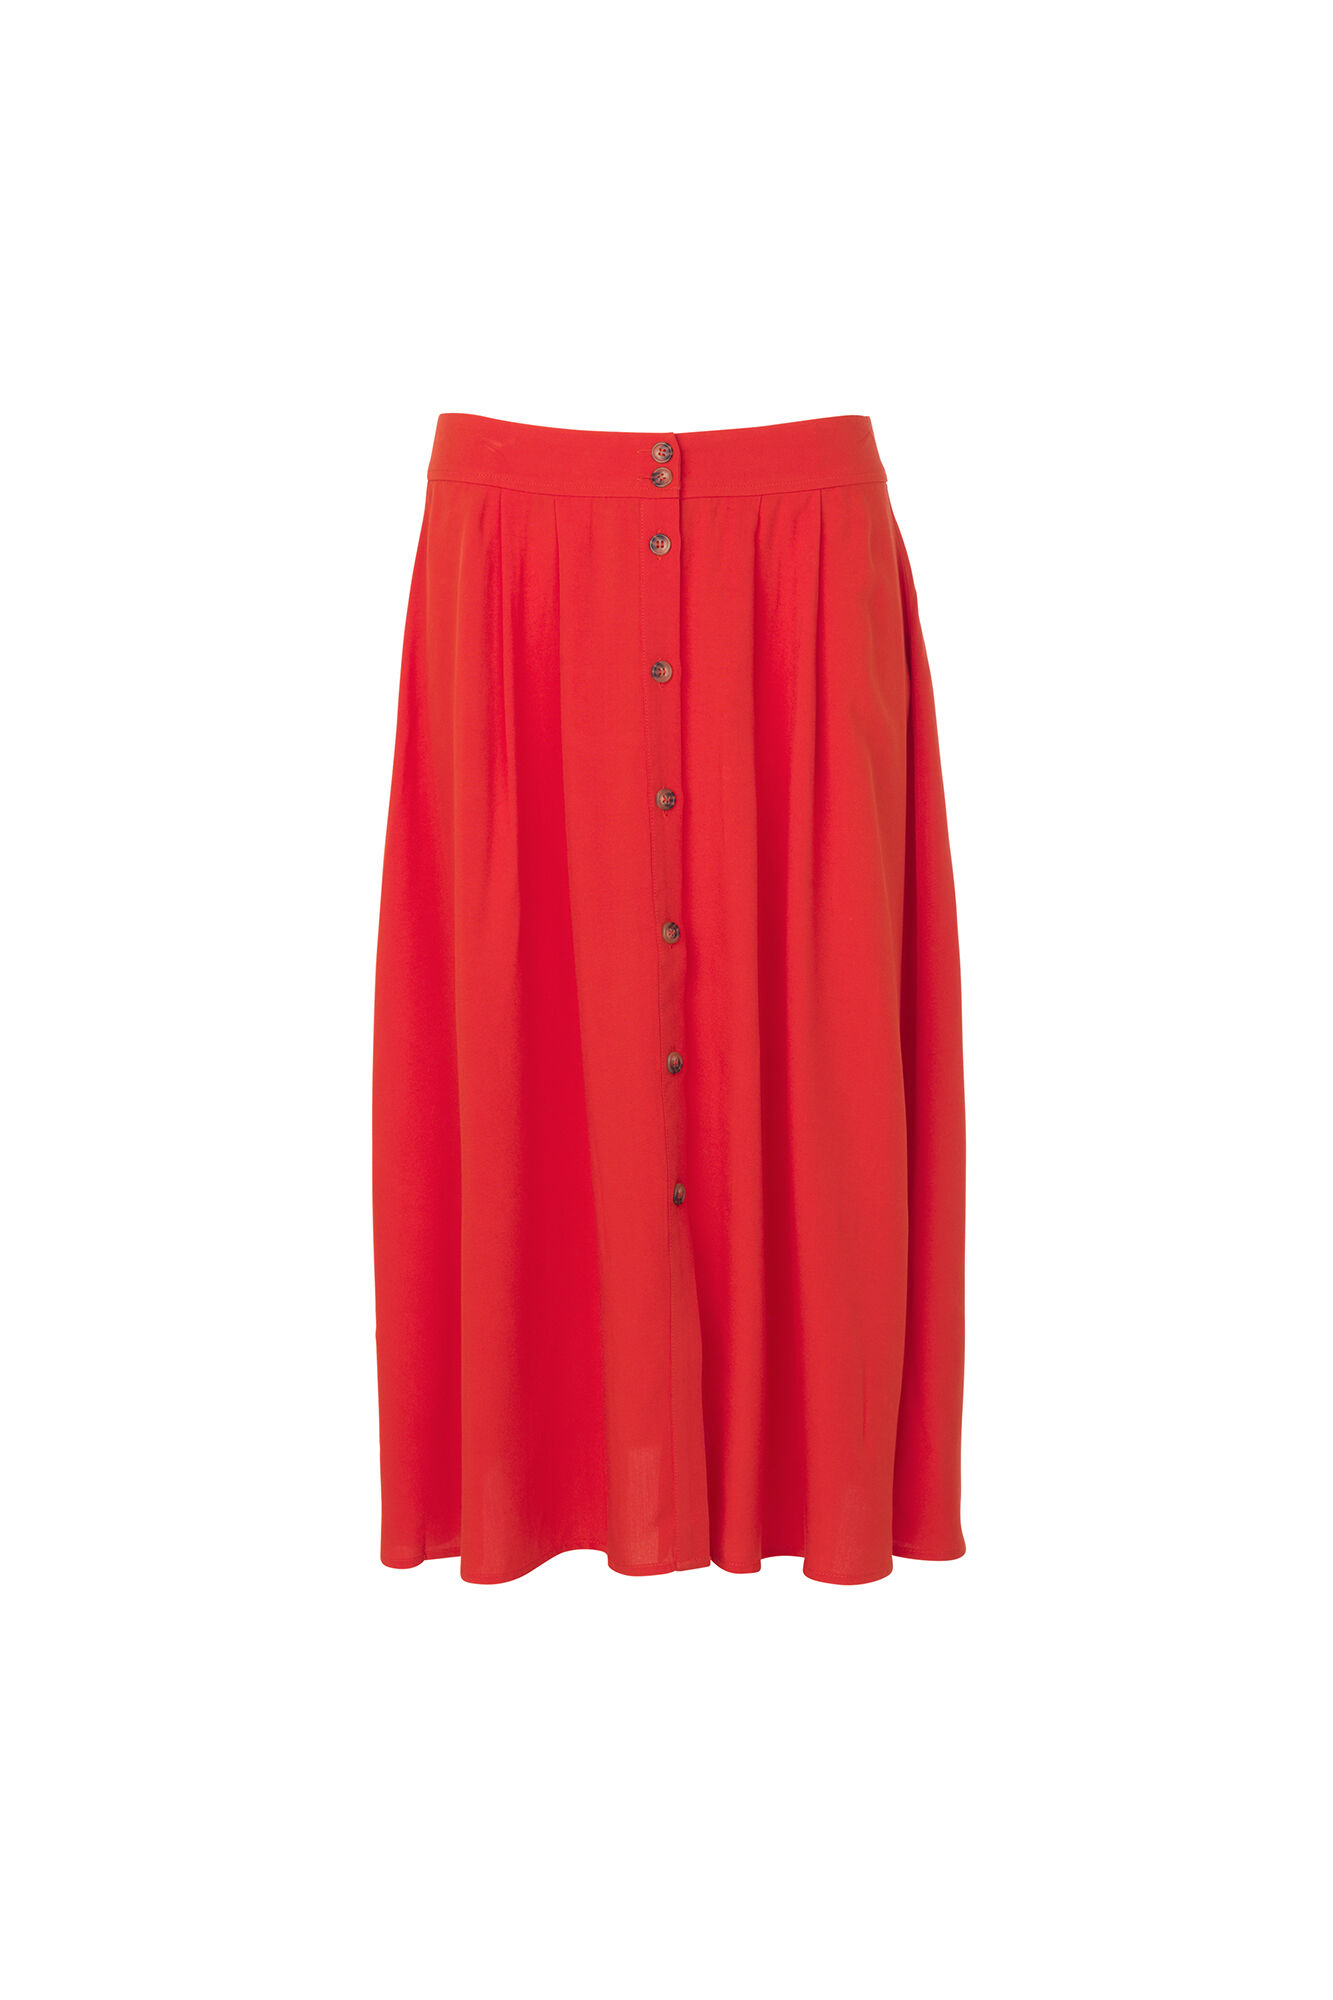 ENMORENO SKIRT 6275, FIERY RED